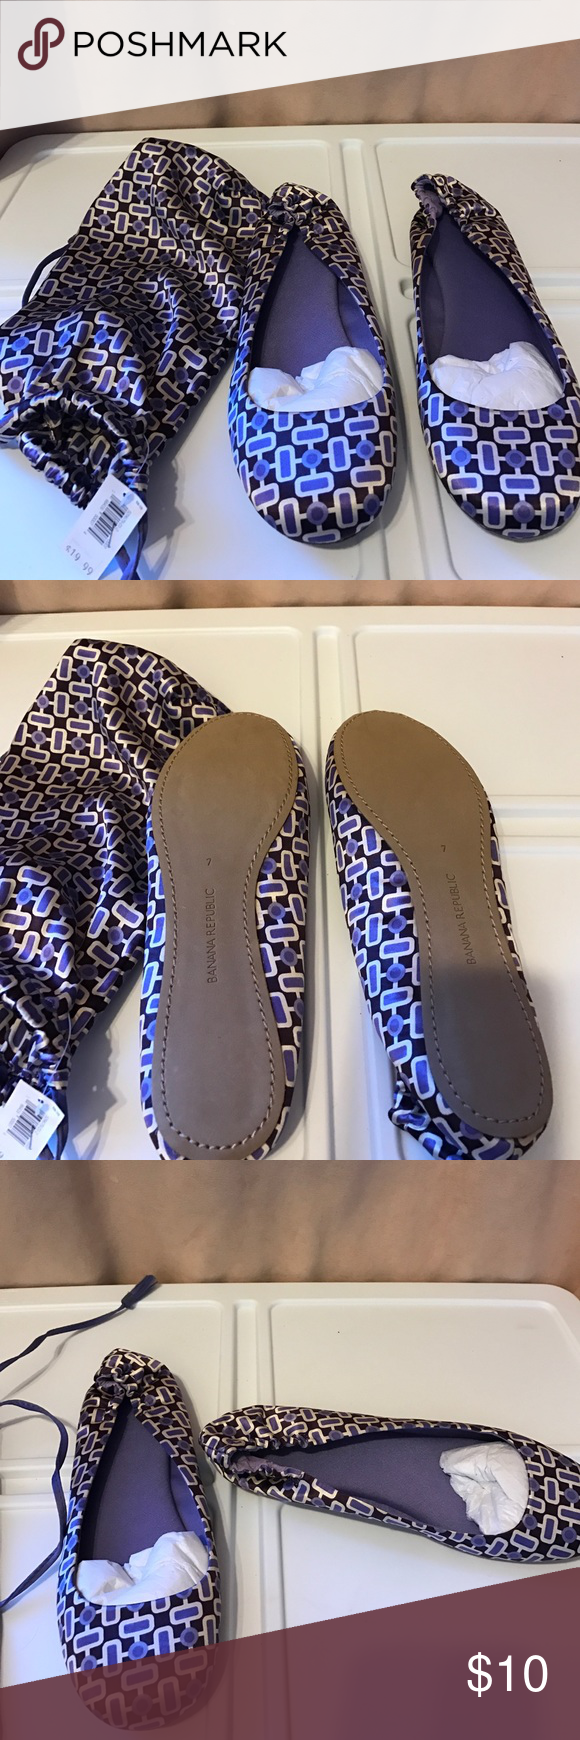 3b152fa1ff9 Slippers Banana Republic silk slippers with sack. NWT sz 7 Banana Republic  Shoes Slippers